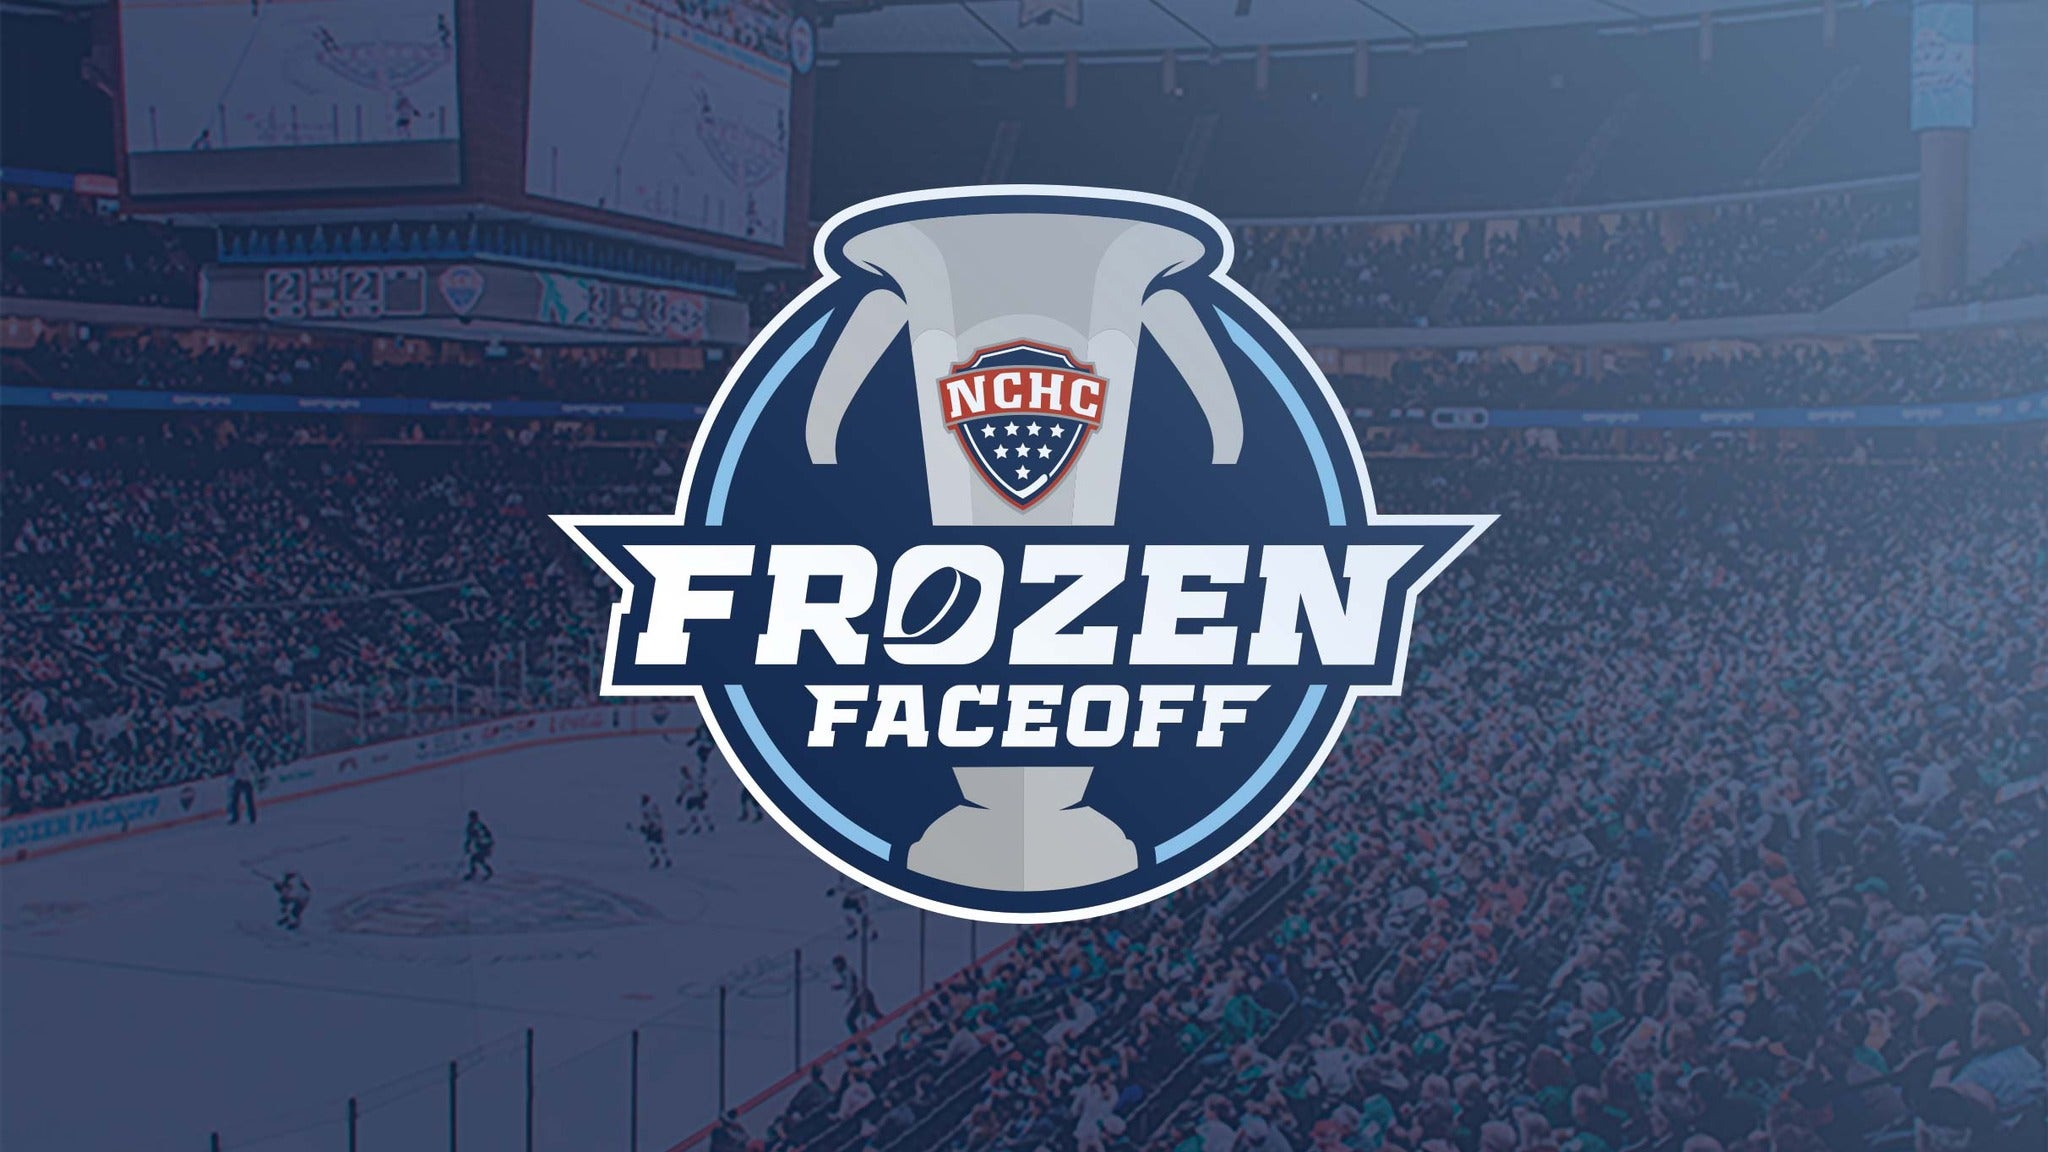 2021 NCHC Frozen Faceoff Tournament Packages